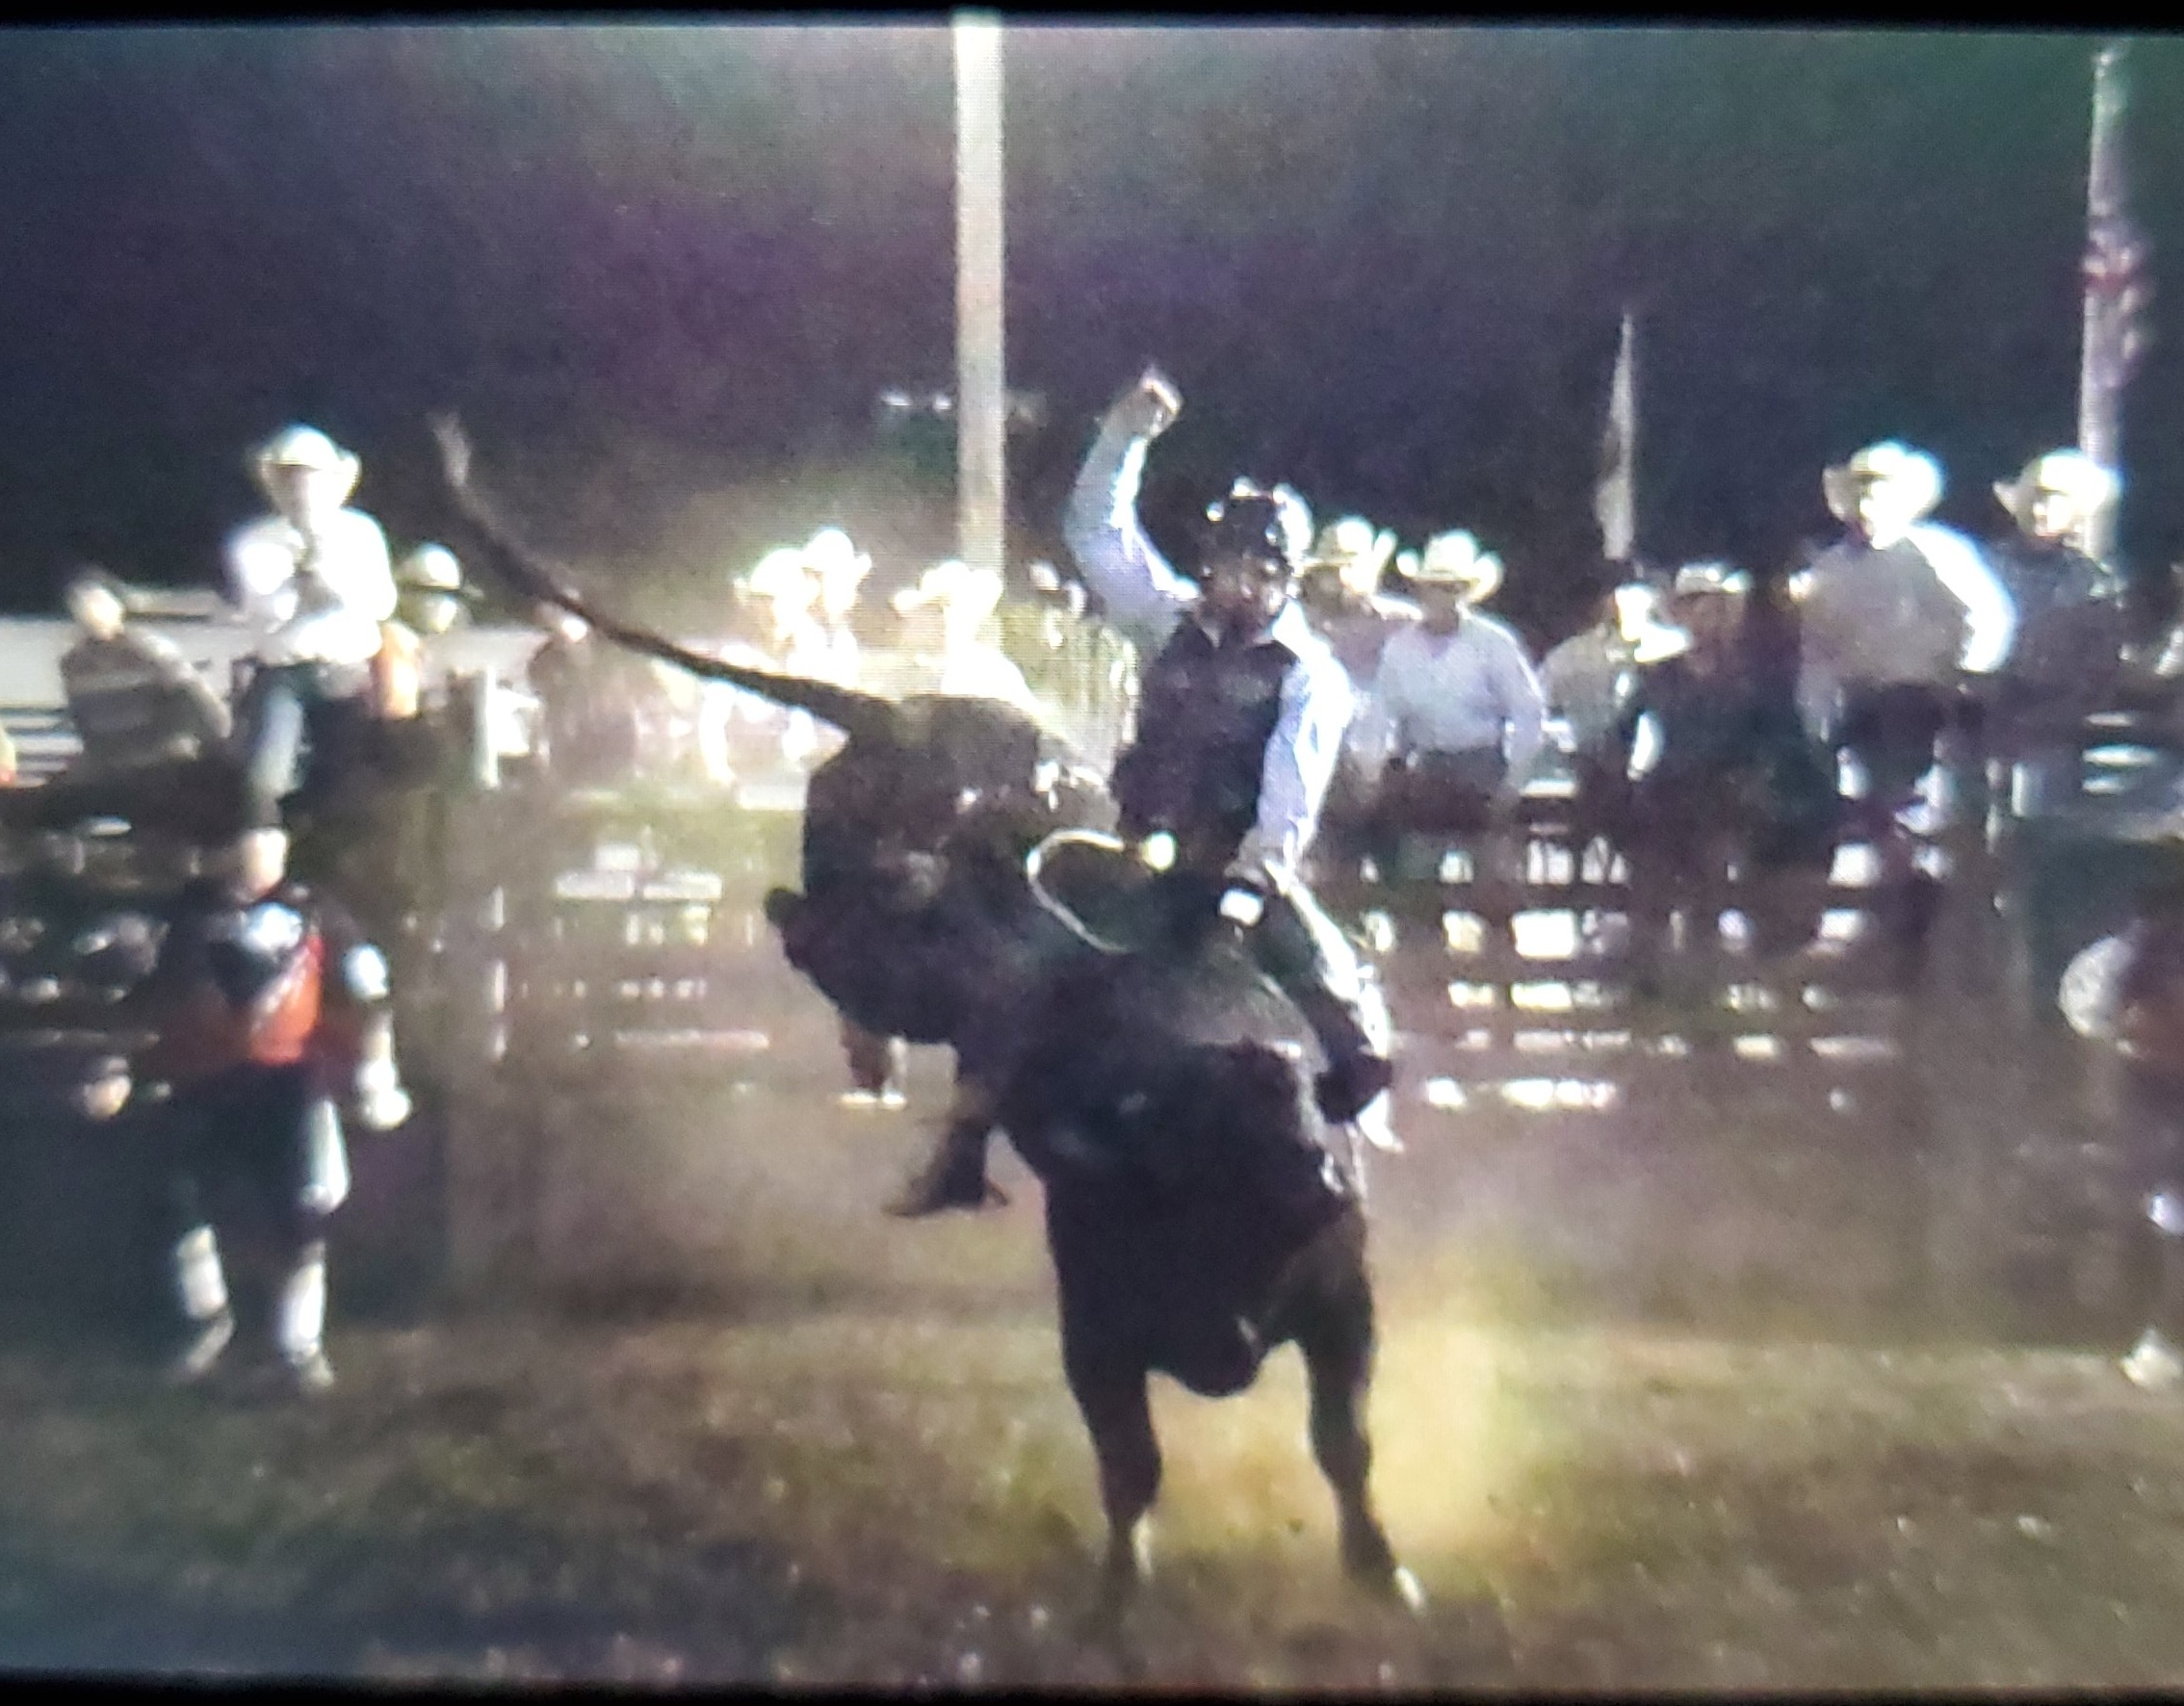 """Jake Weber Wins season opener of the Tuff Hedeman Mid West Swing Breakout Series in Woodstock, Illinois. Photograph: Weber on bounty bull """"Y"""" Mr. Wilson from CC Bucking Bulls for 92.5 points. Photo by V Veronica Pizor."""